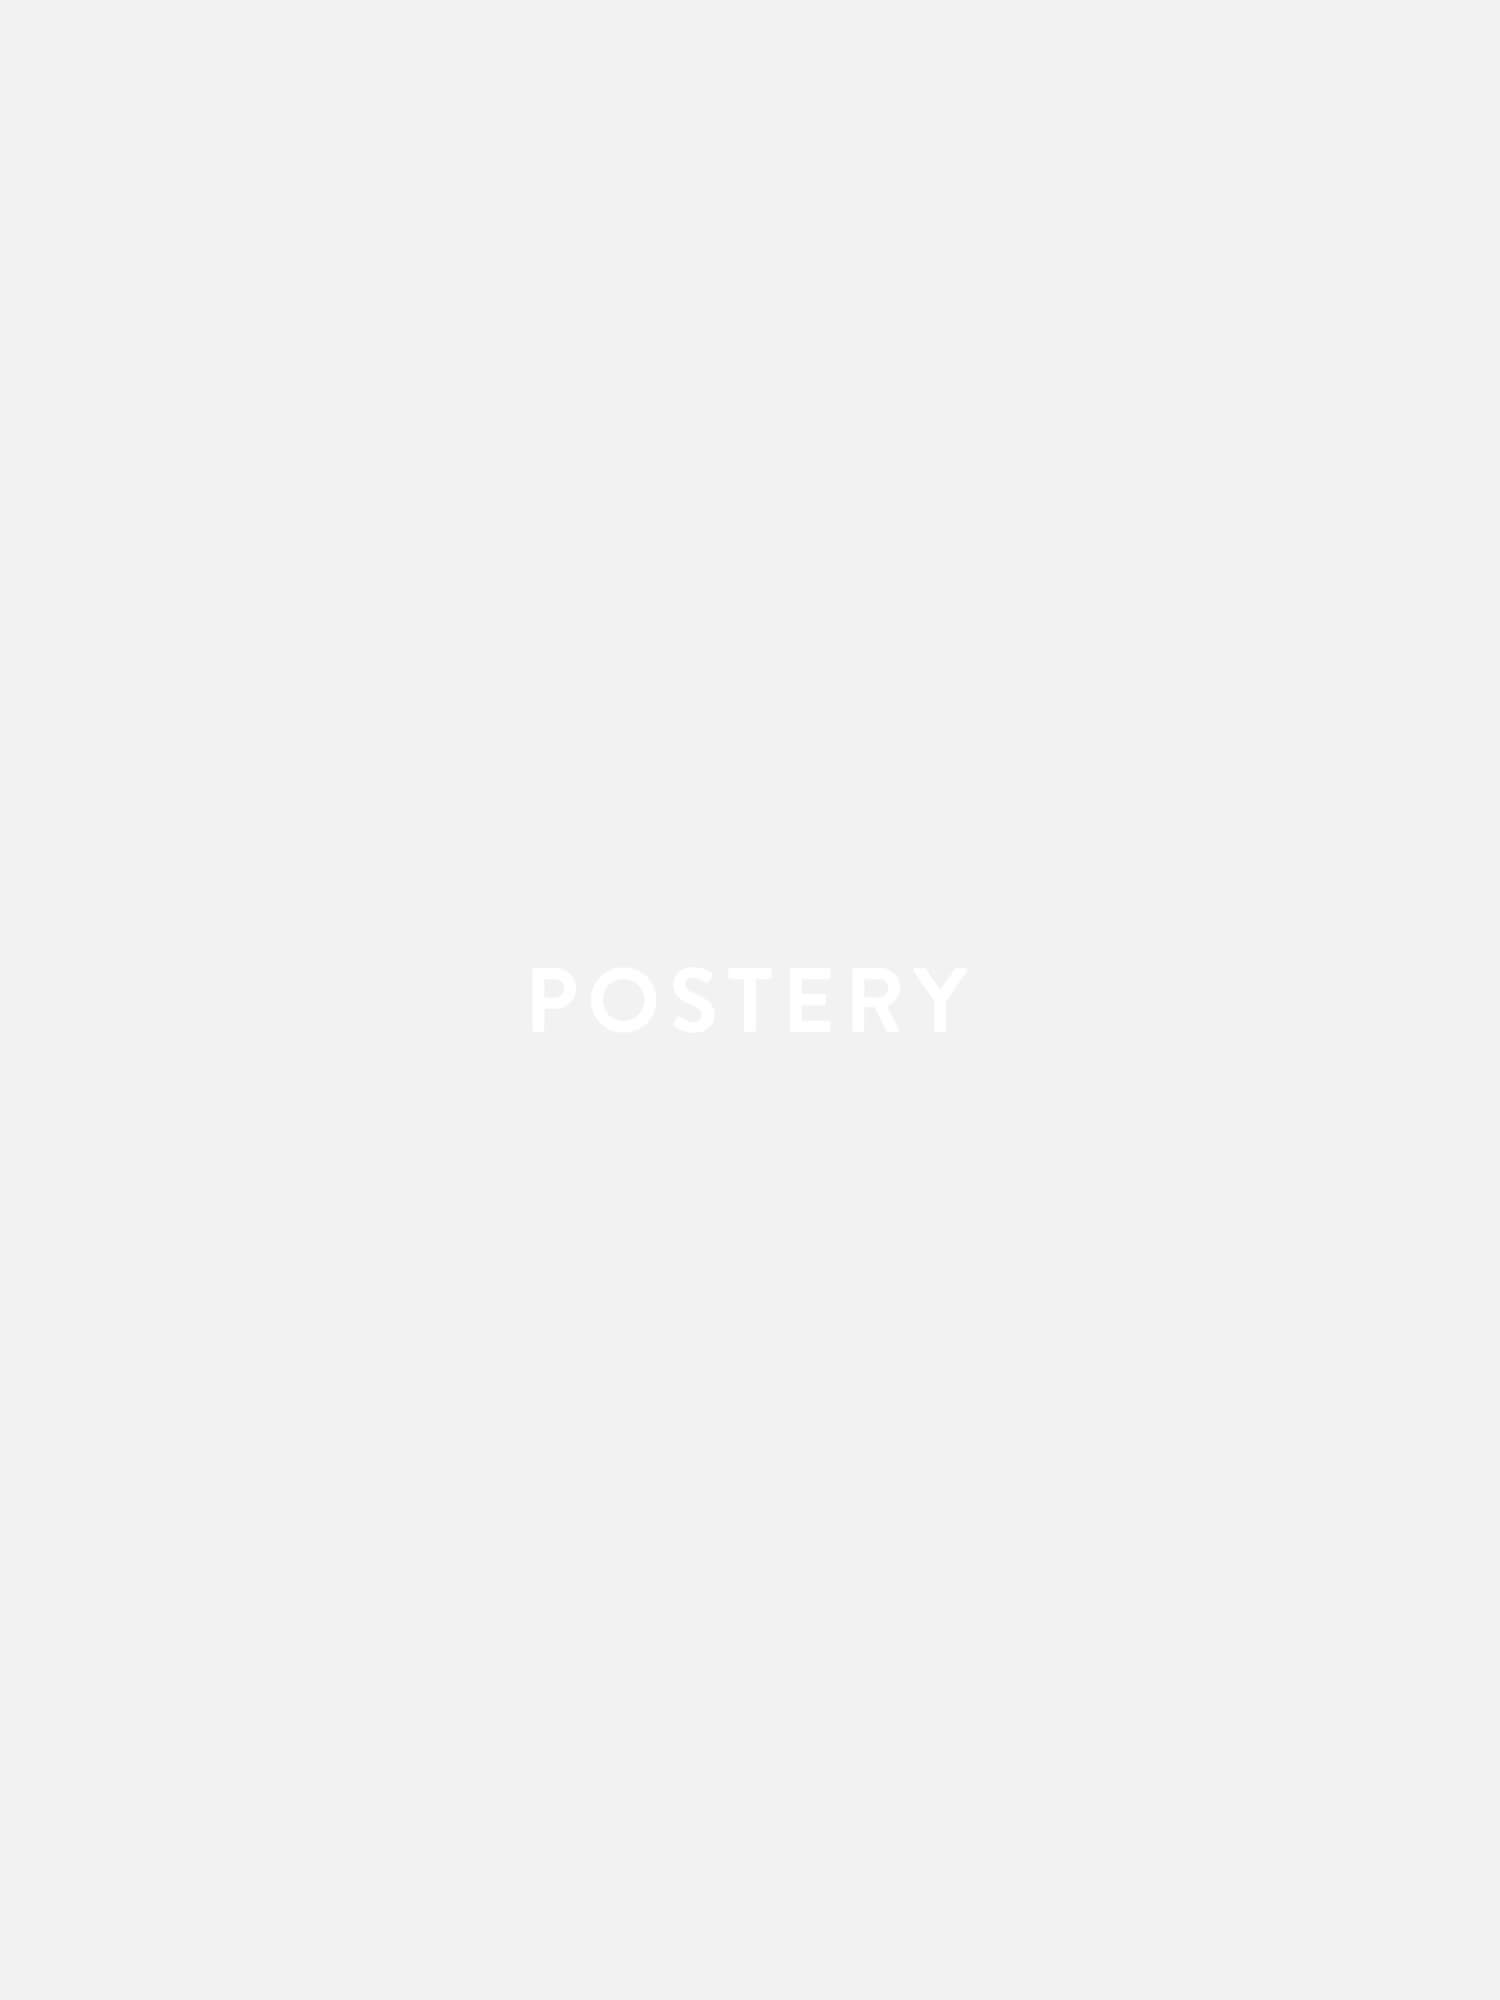 Gallery Wall #6870